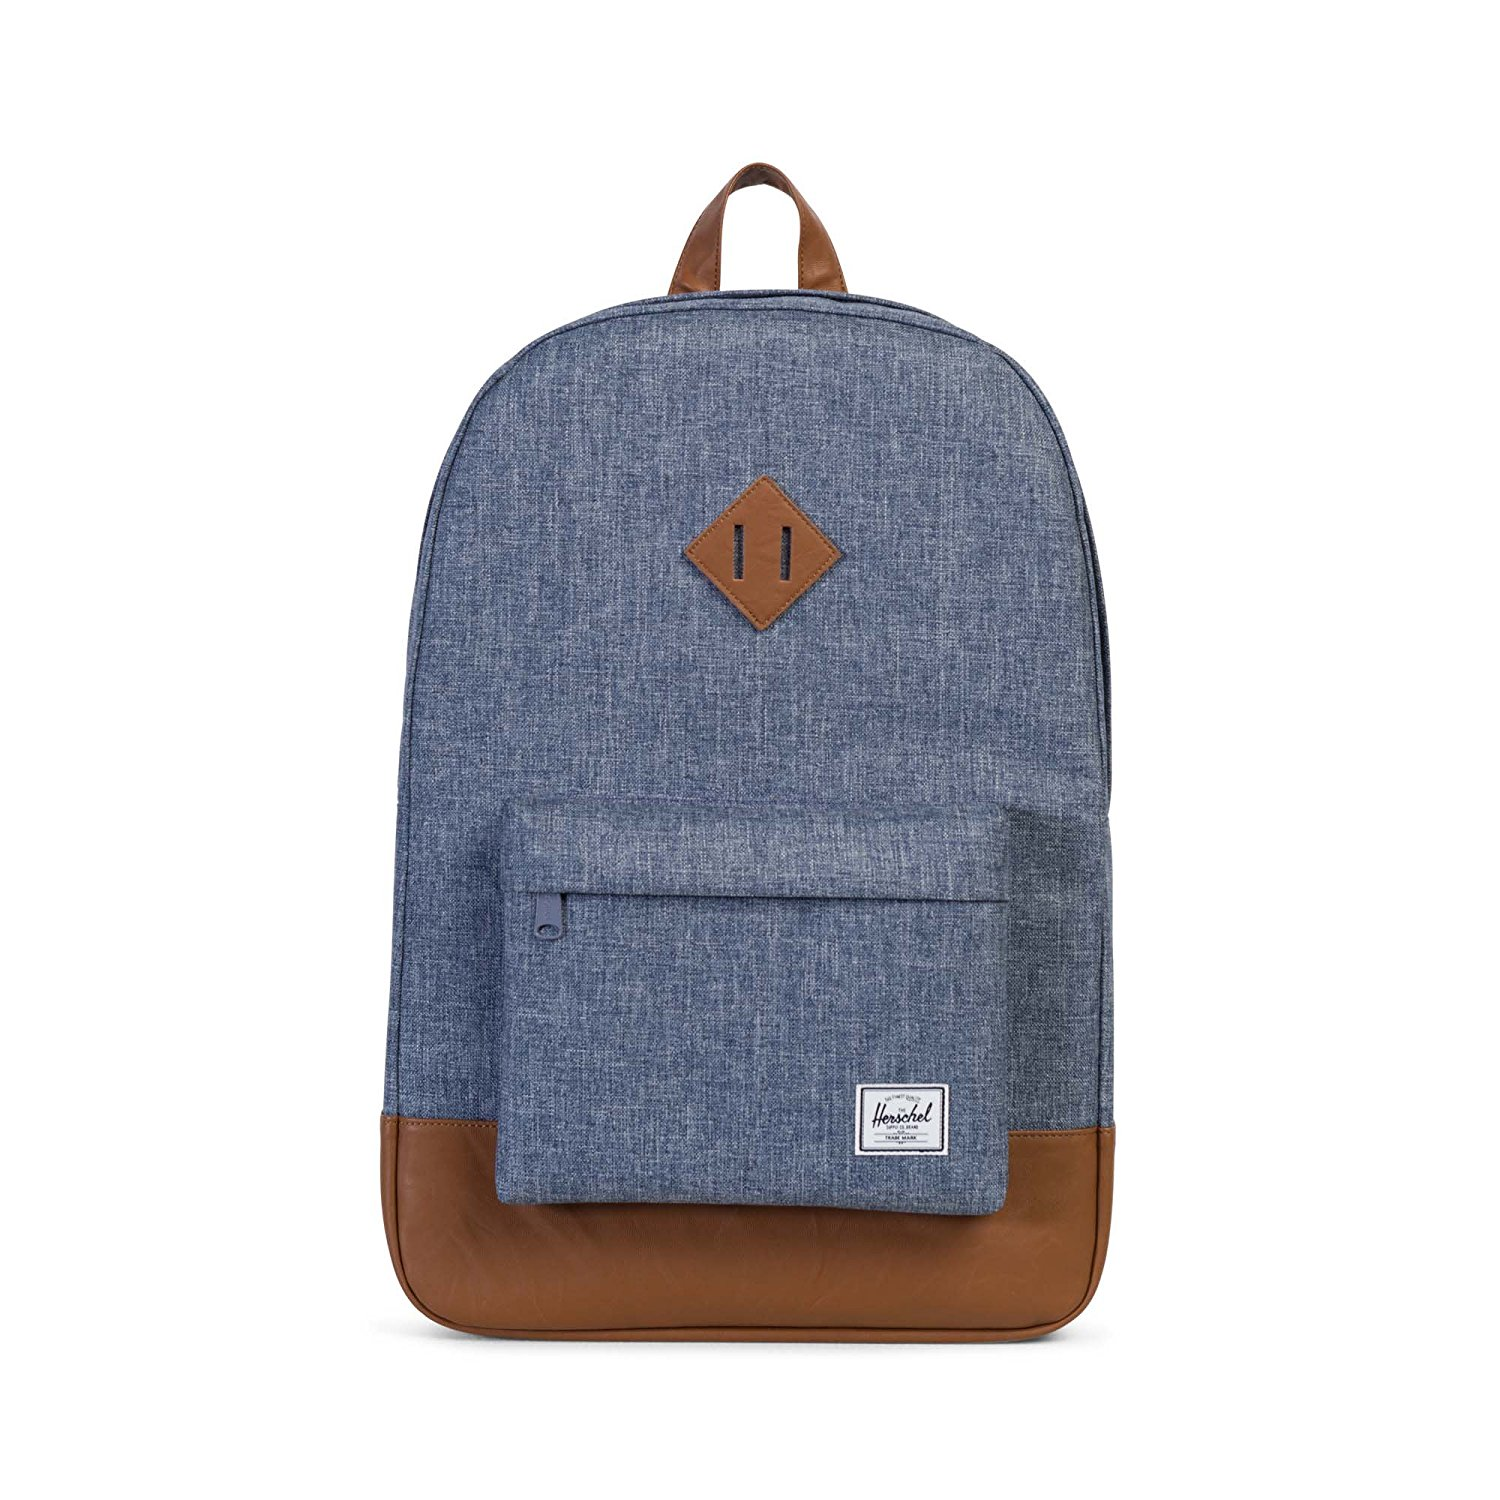 855d42fec4 Heritage Backpack is definitely a great choice.  59.99 from Amazon